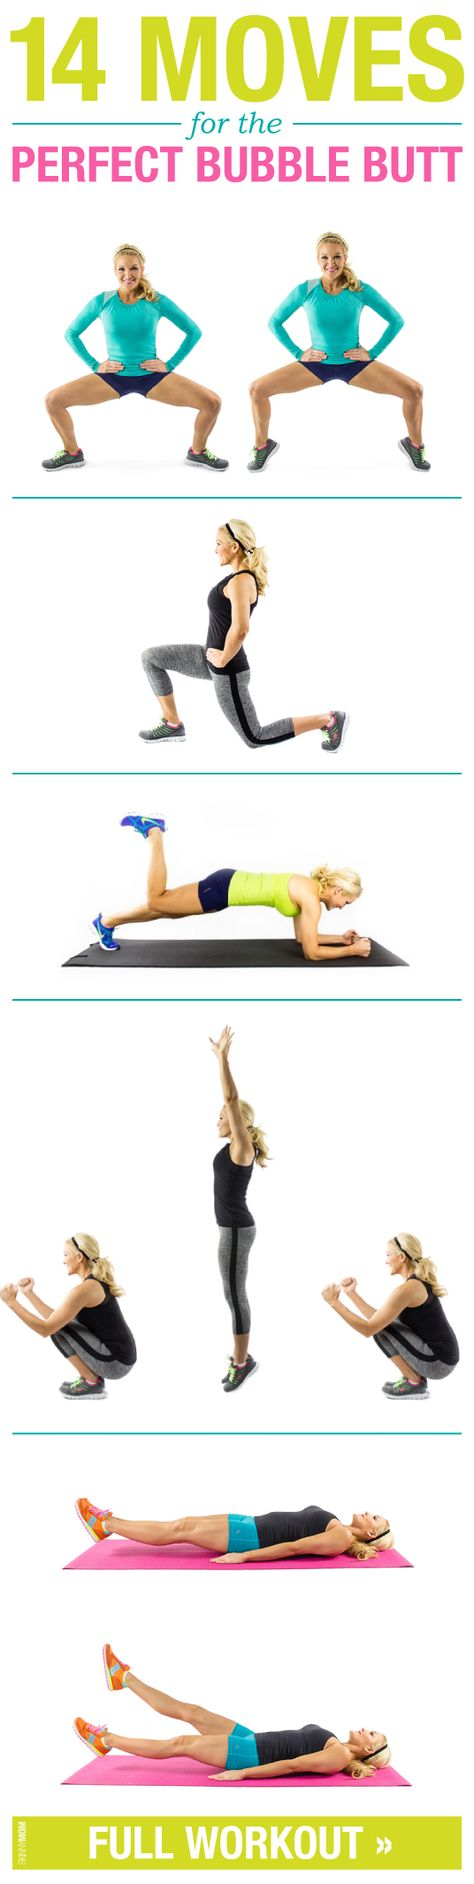 Get the perfect BUBBLE BUTT with these moves. http://slimmingtipsblog.com/what-is-the-best-way-to-lose-weight-fast/